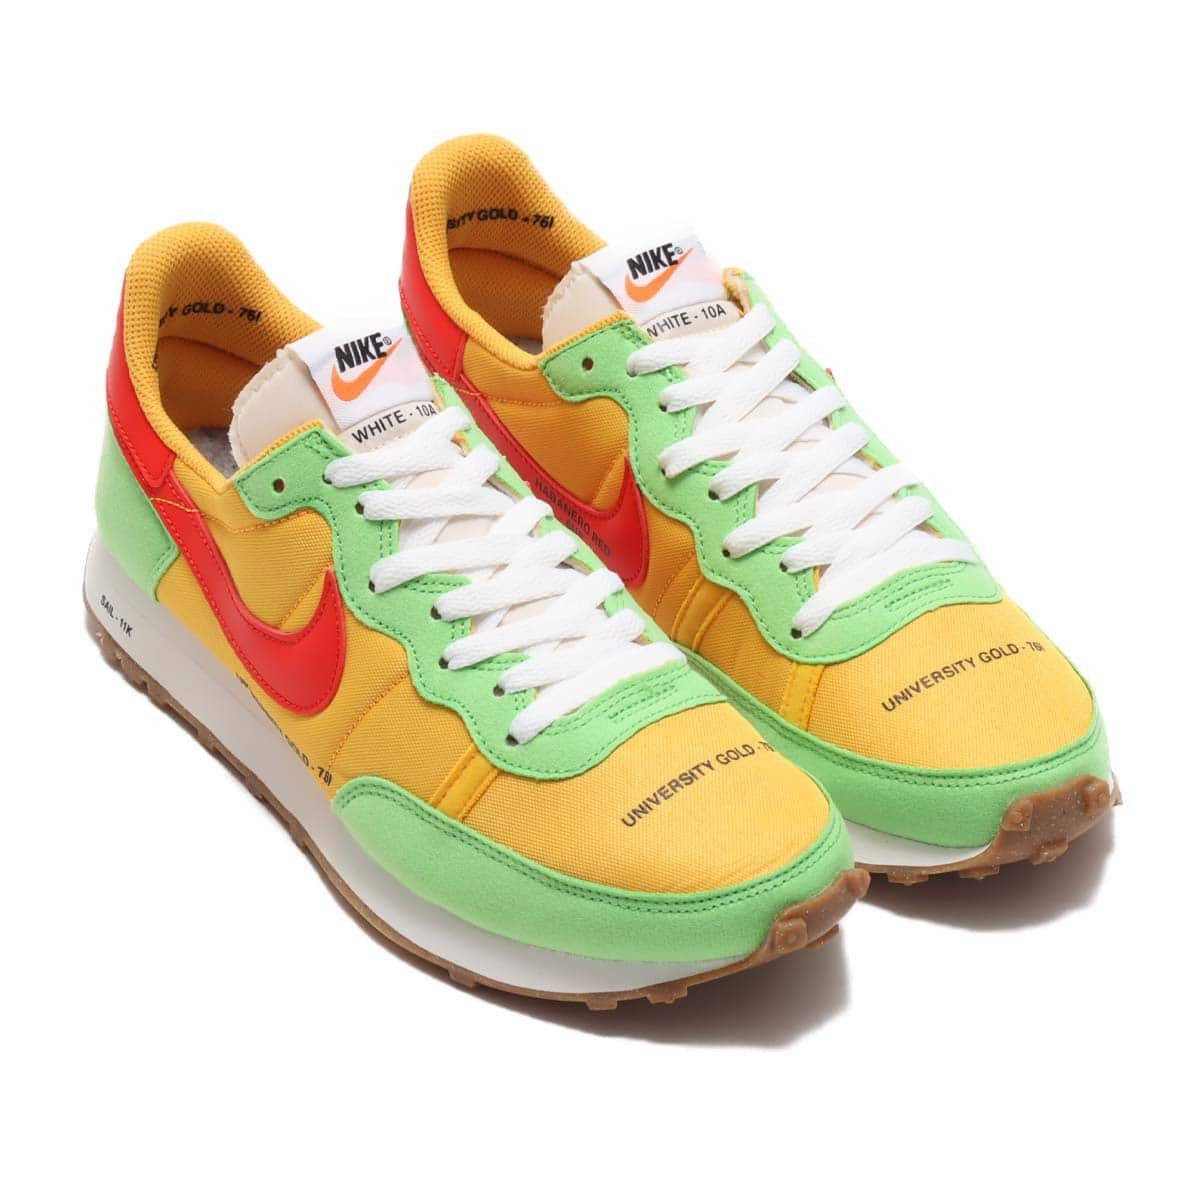 NIKE CHALLENGER OG UNIVERSITY GOLD/HABANERO RED 20FA-I_photo_large